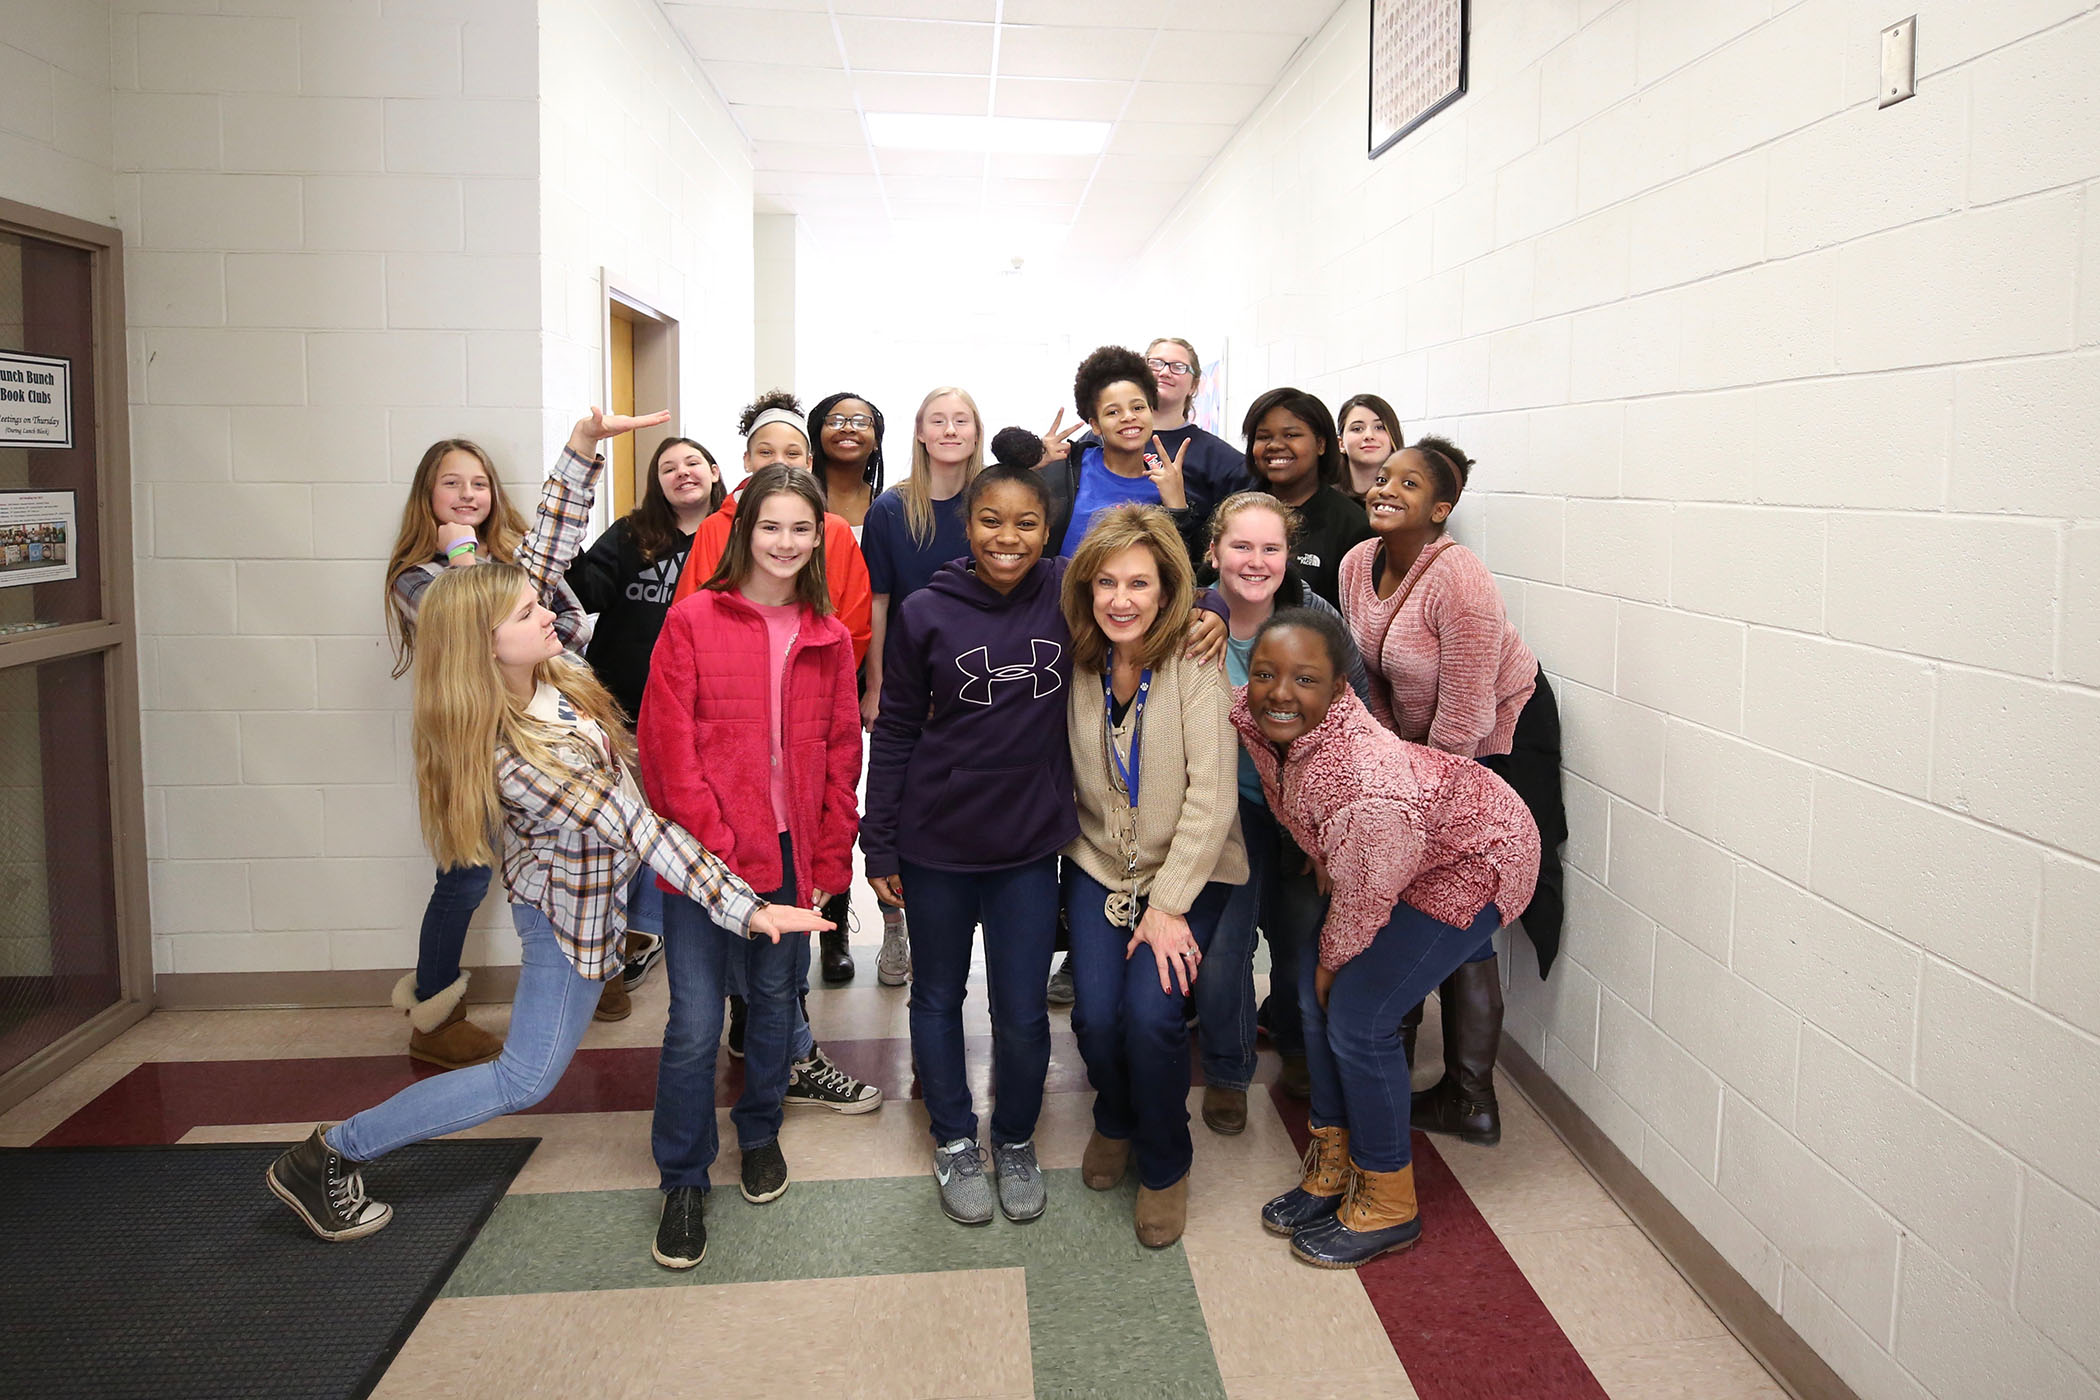 18 QHS students were chosen for the MSU Bagley School of Engineering I AM GIRL Program. They pose for a photograph.